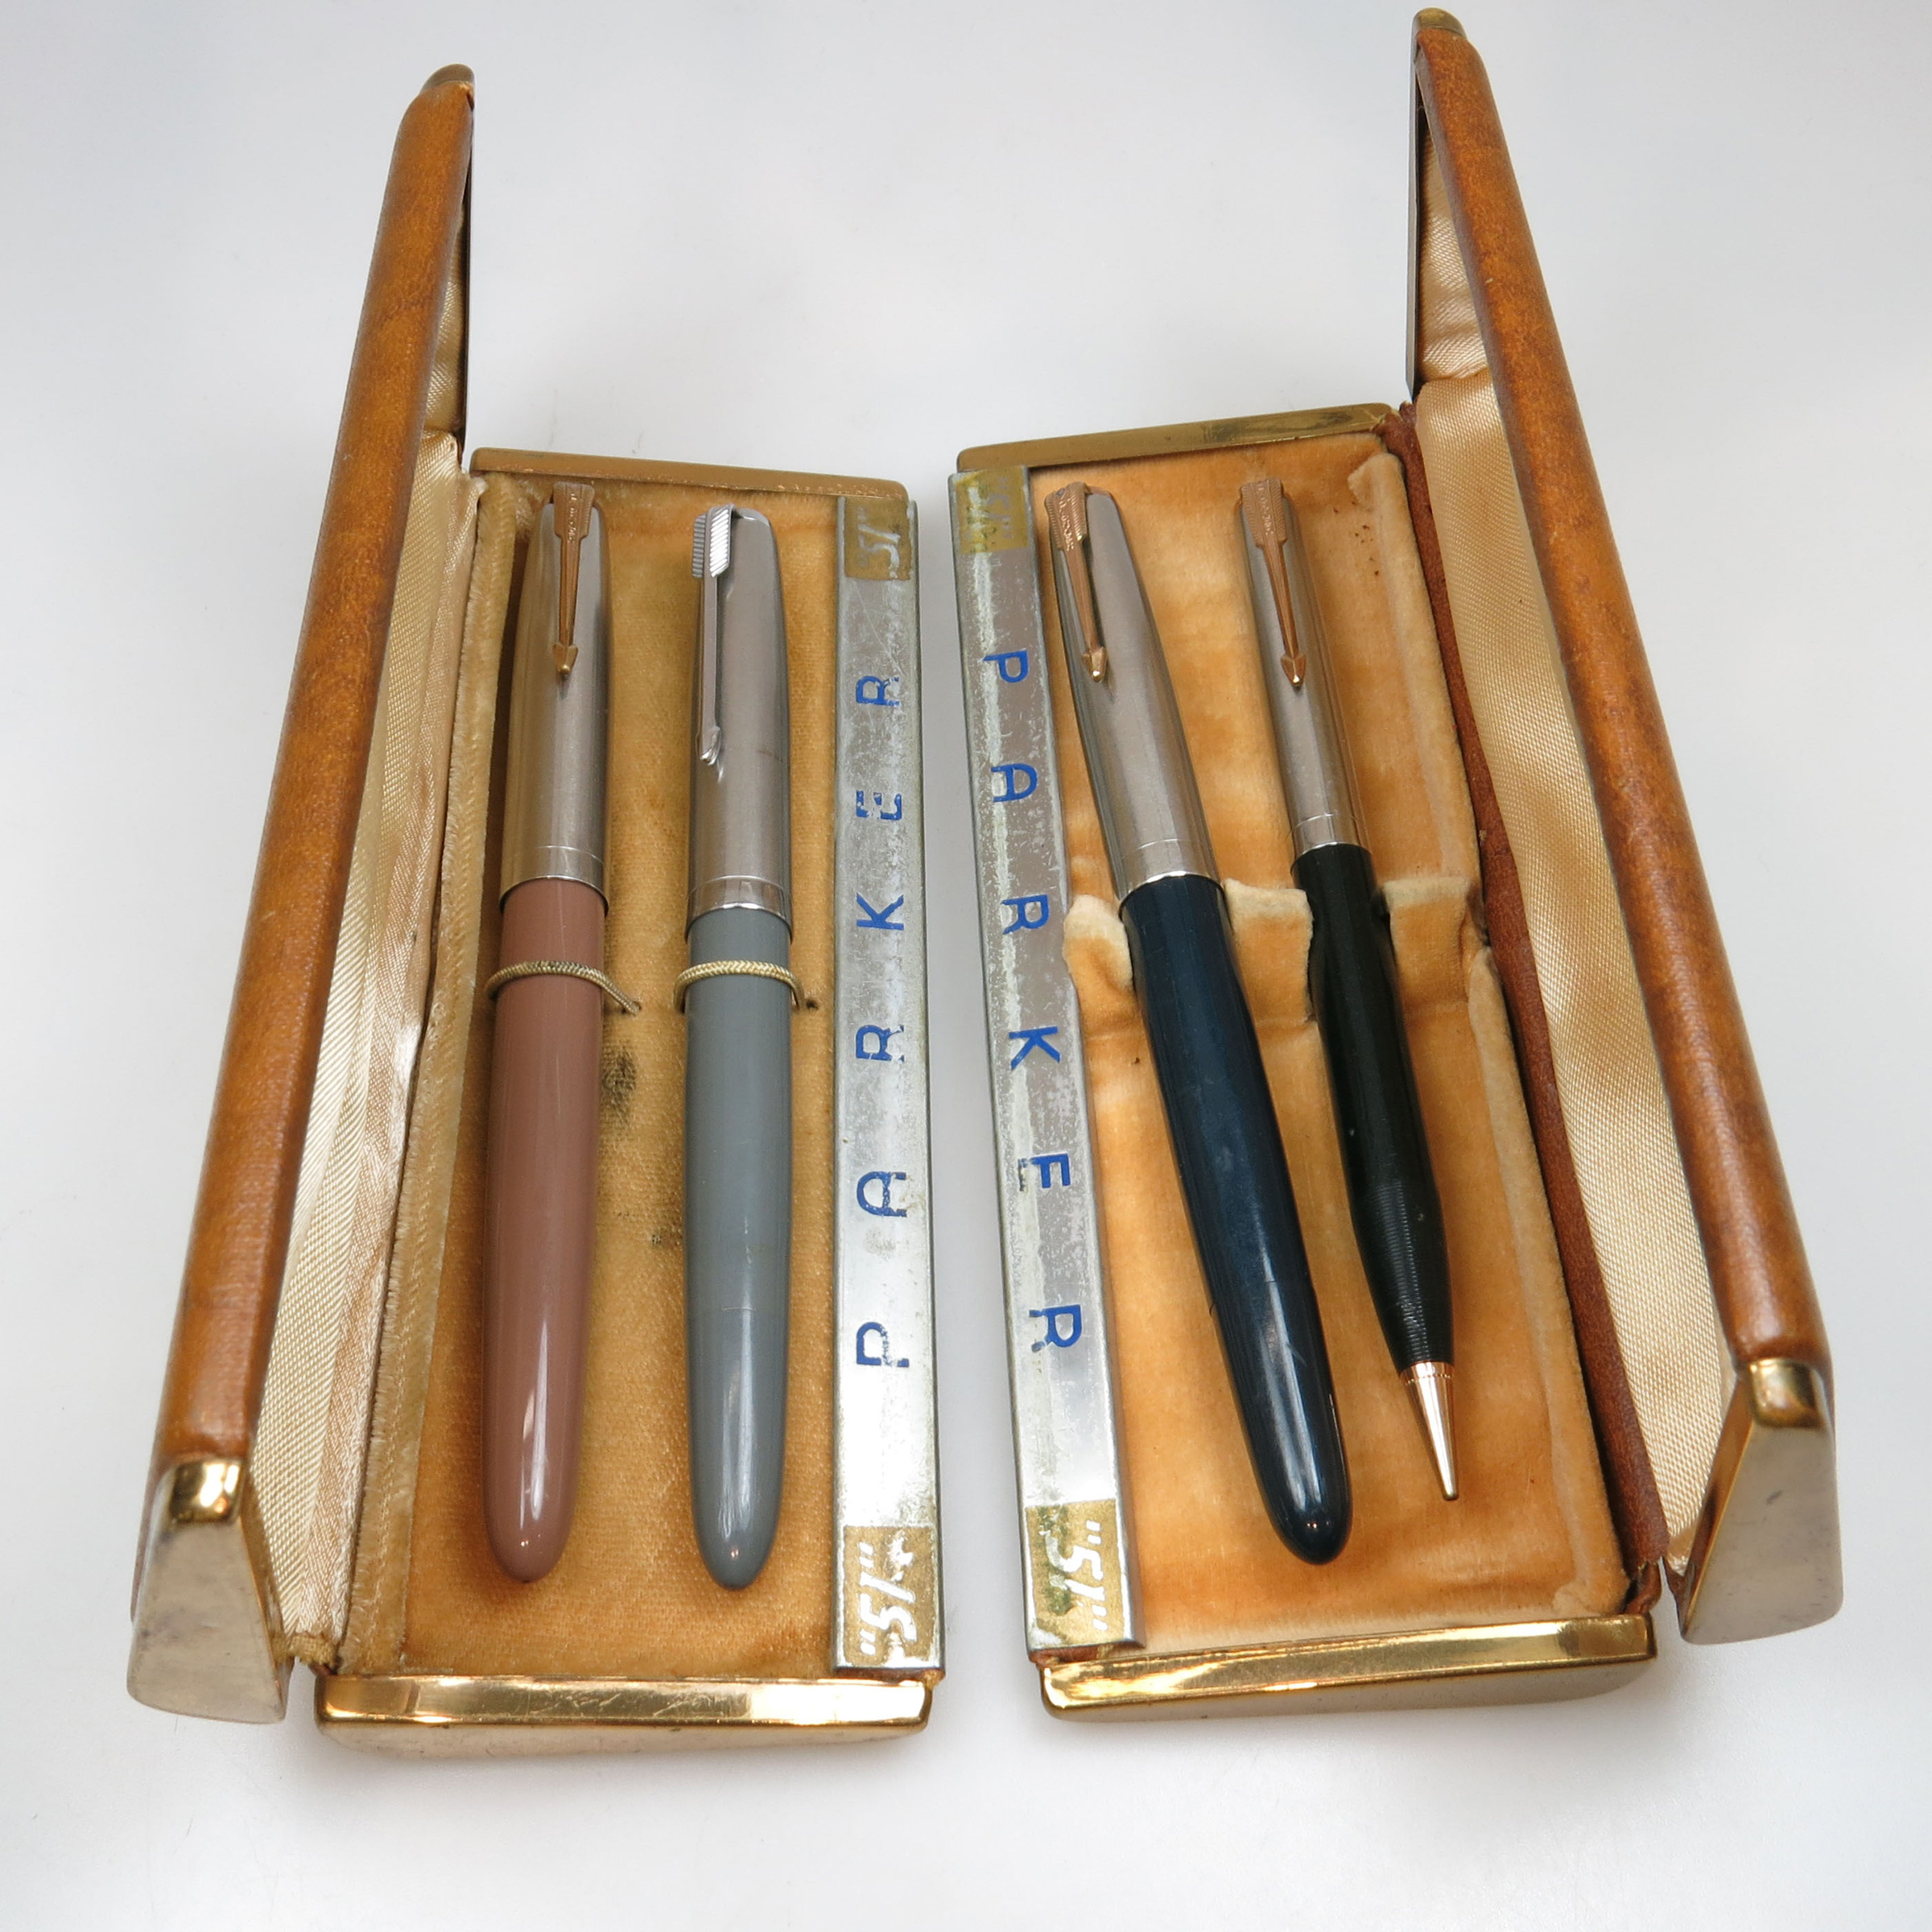 3 Parker 51 Fountain Pens And a Similar Mechanical Pencil